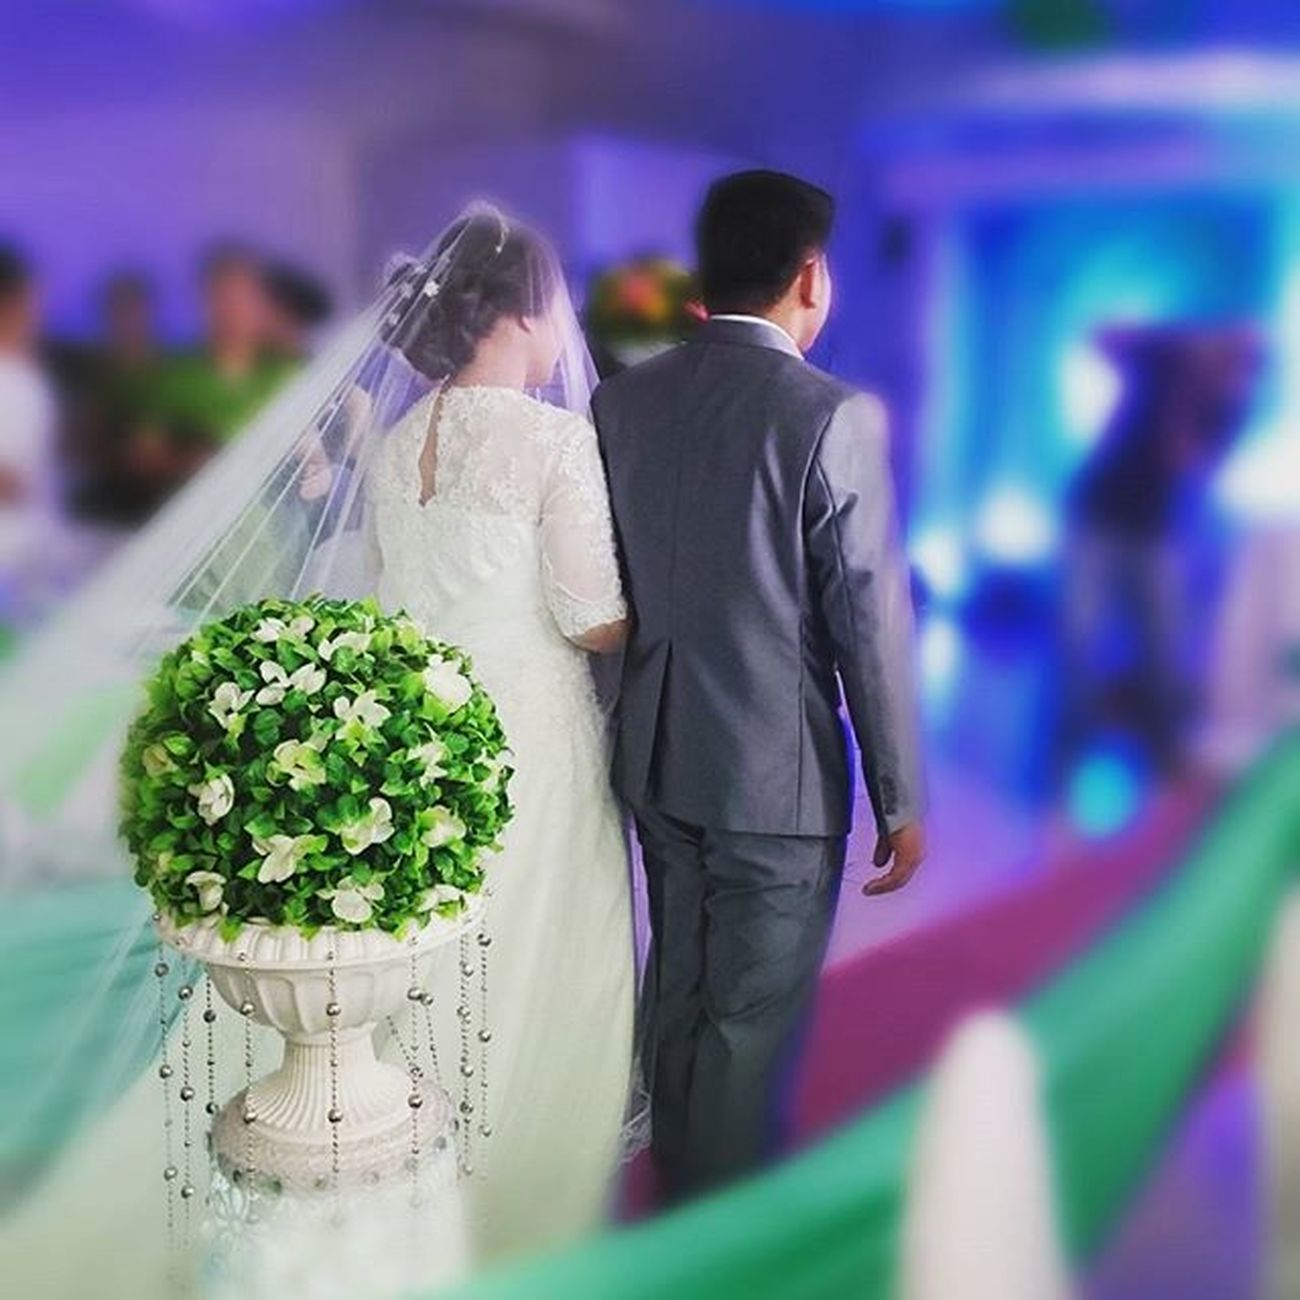 THE G and V WEDDING. Along the aisle. 🎊 💒 💏💑💞💖👍👌 😁😍 TheBnanaswedding RoadToForever Bestwishes Storyoflove Weddingbells GerrelAndVanesaNuptials 02032016 Sonyverse Sony XPERIA ICAN DemandGreat BeMoved Makebelieve PlainHappiness